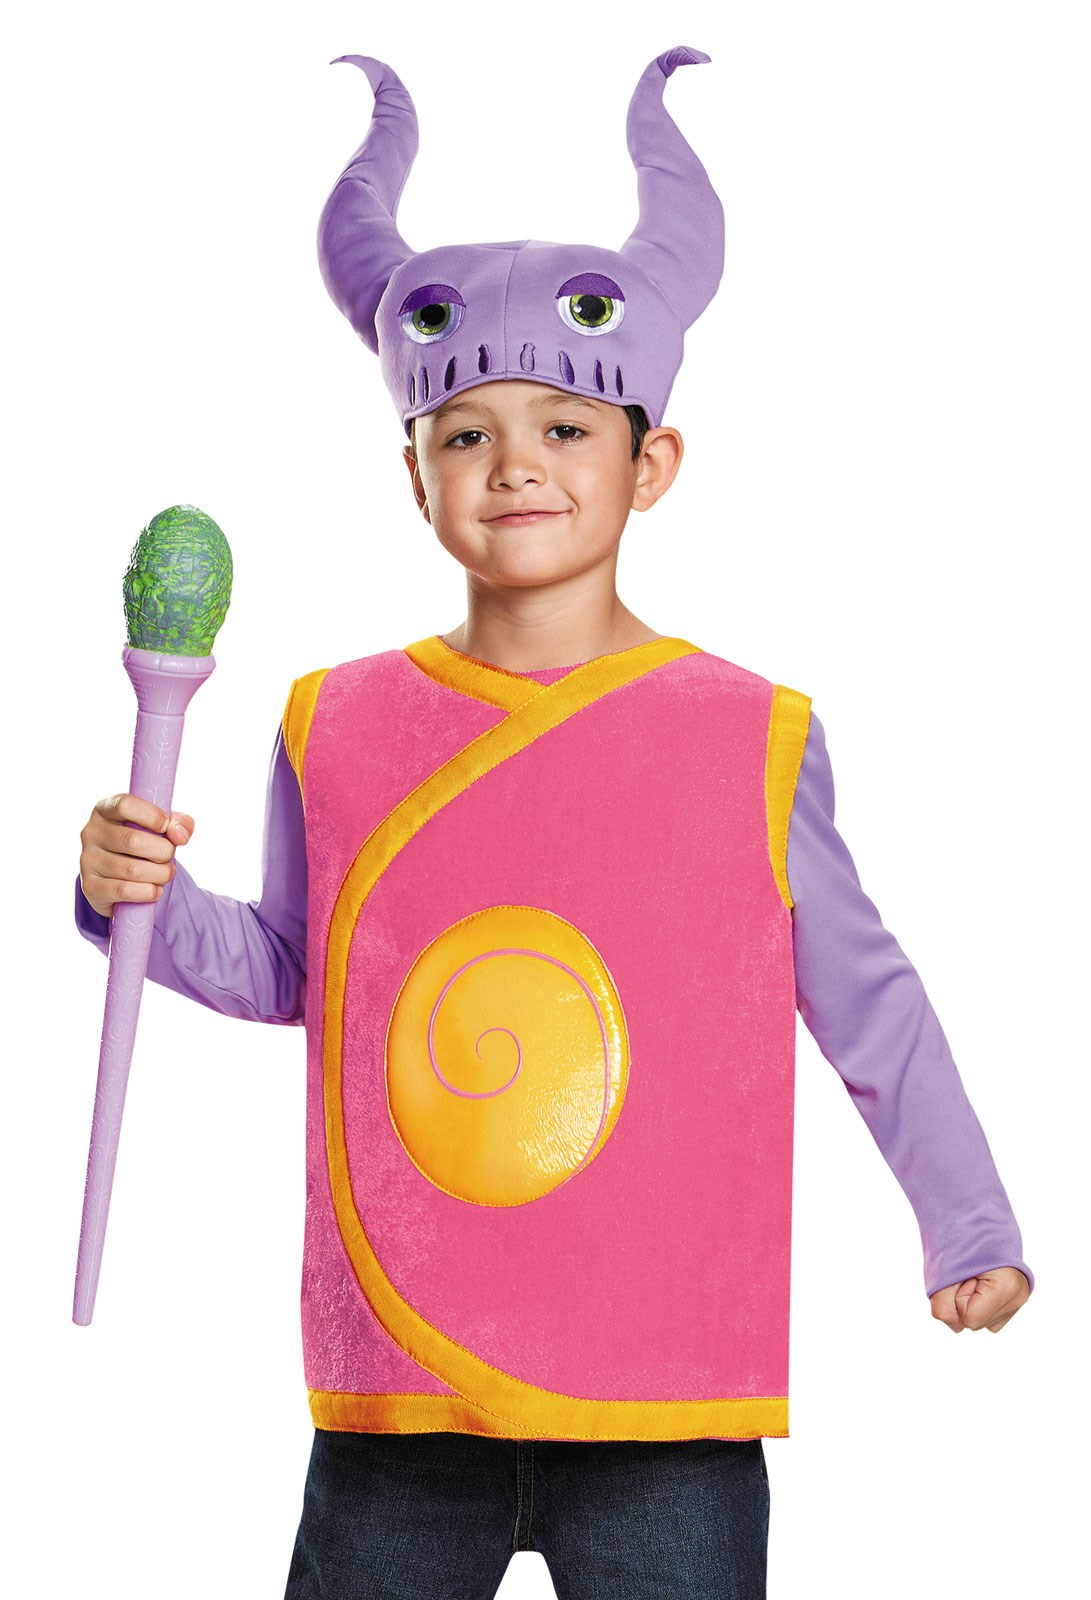 Dreamworks Home: Captain Smek Deluxe Costume For Toddlers